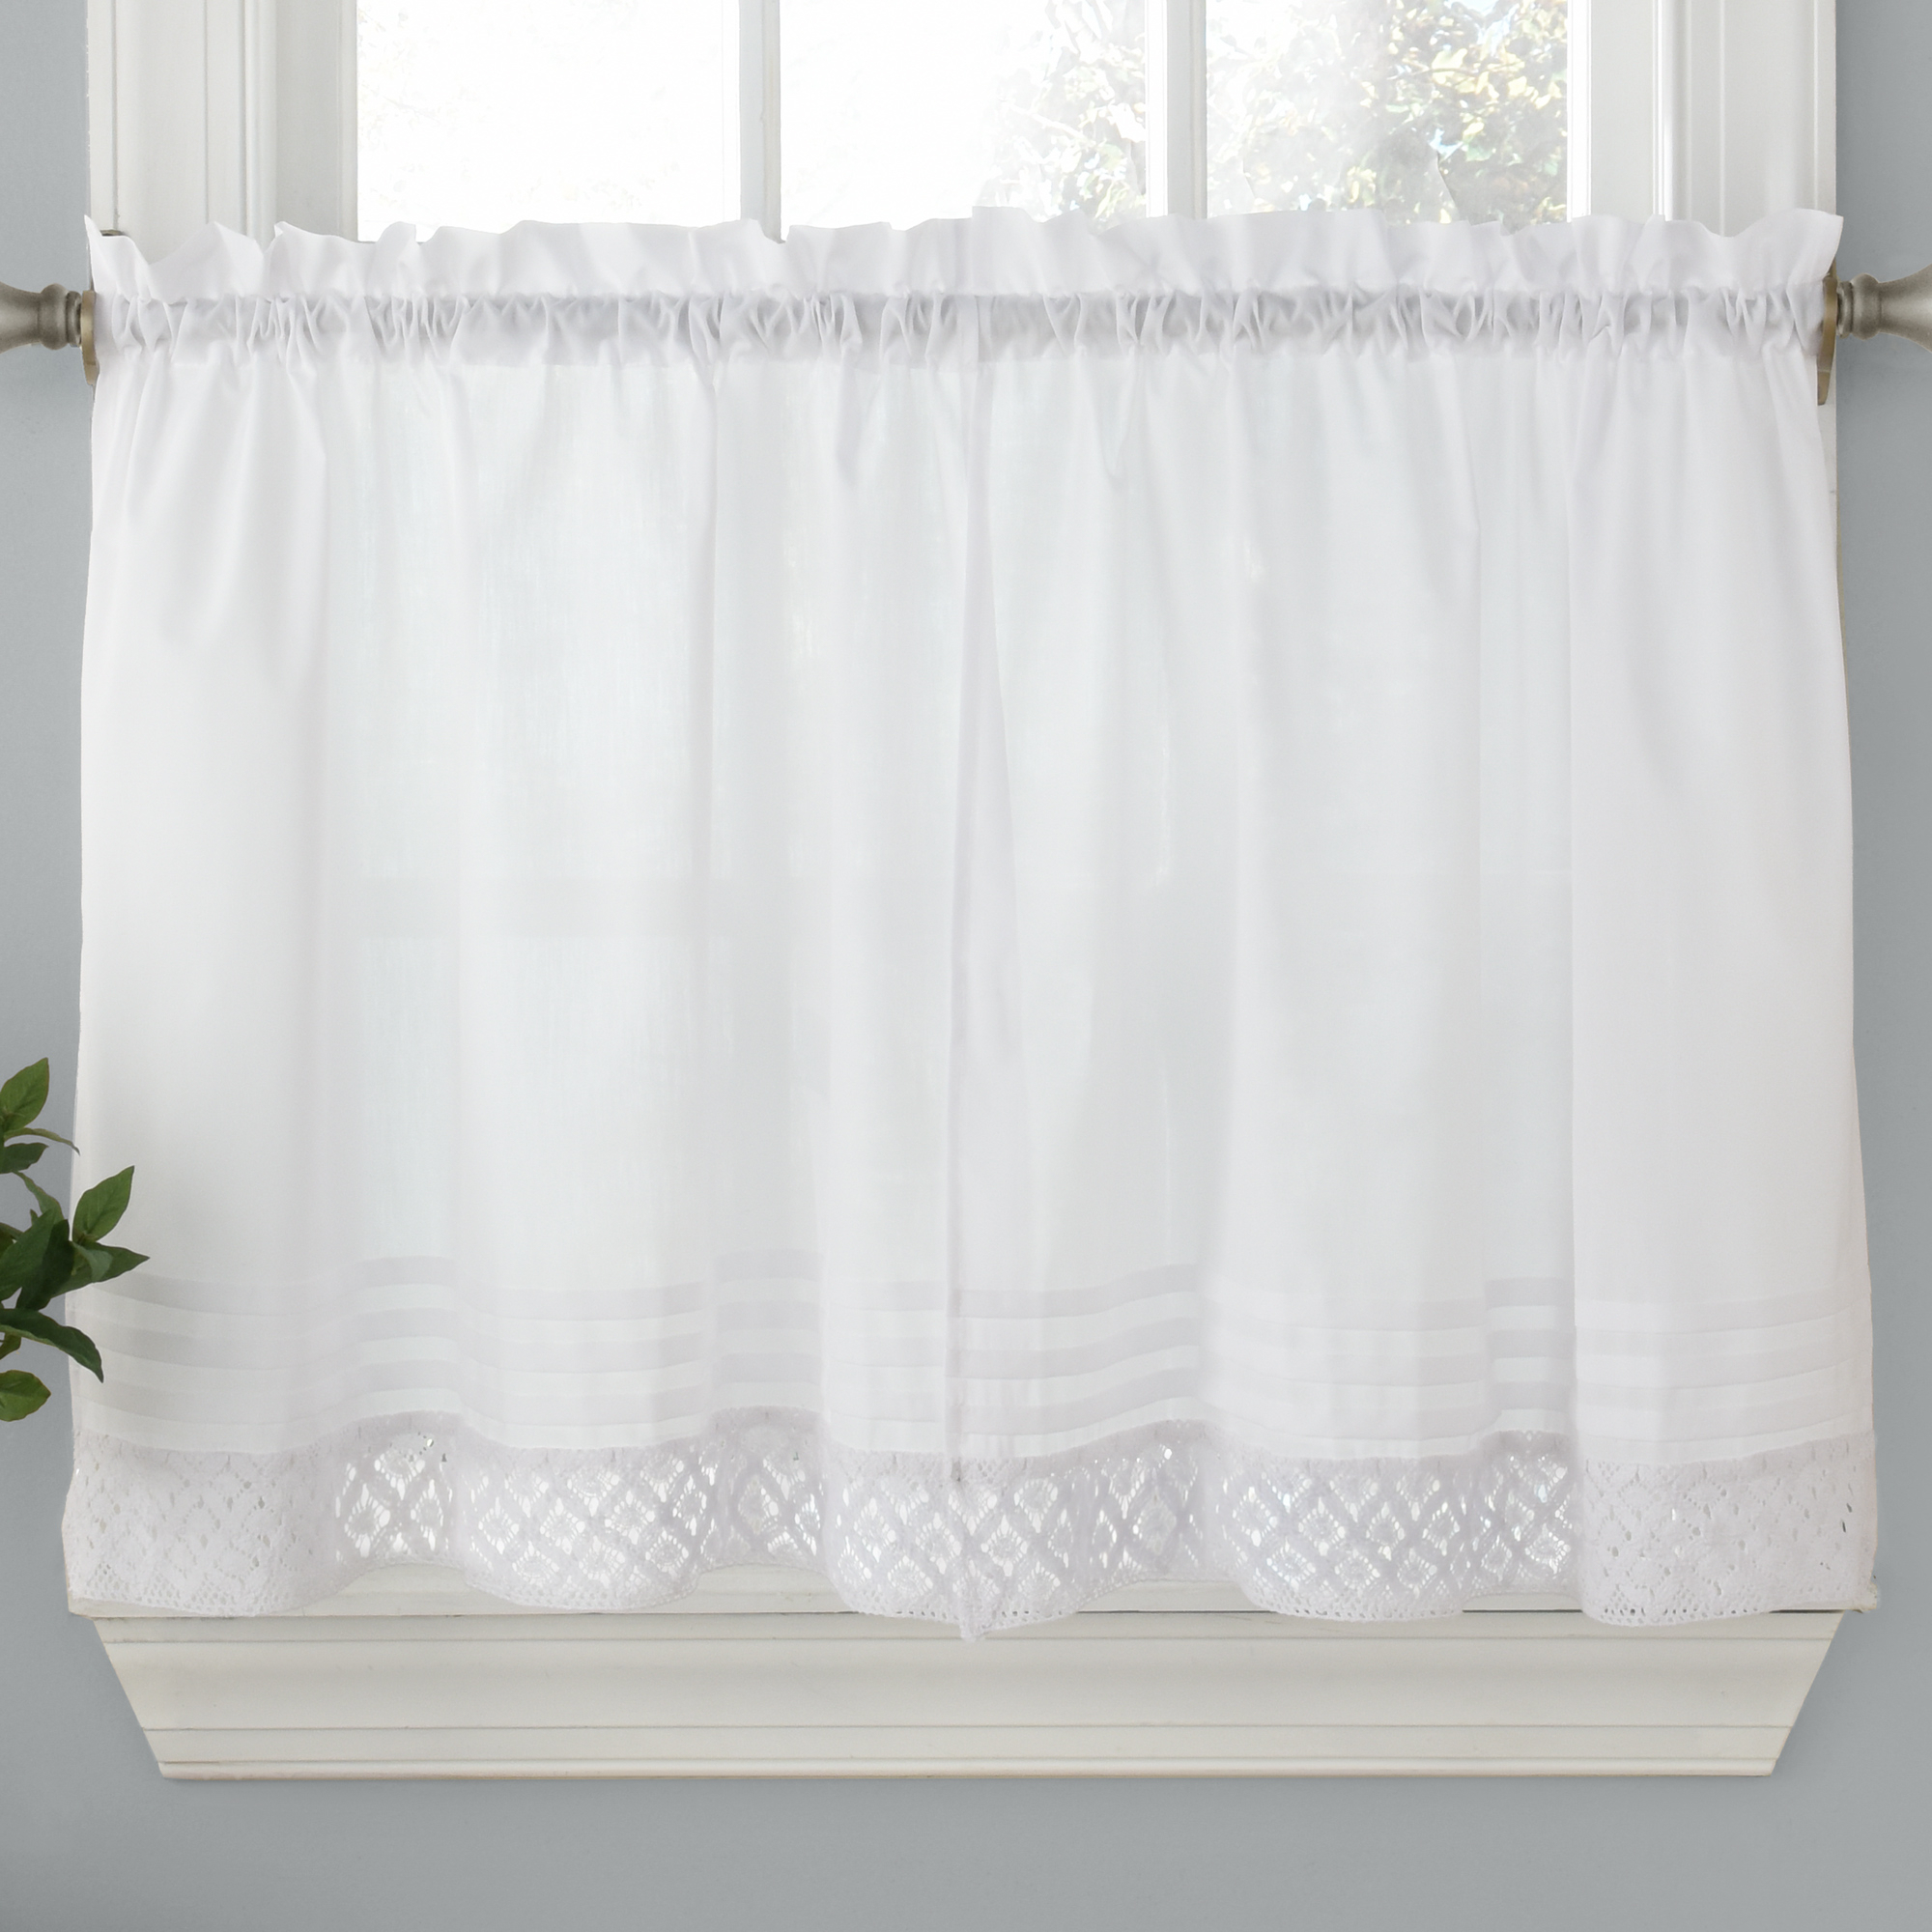 Pleated Curtain Tiers With Regard To Trendy Pleated Crochet Kitchen Window Curtain Tier Pair Or Valance White (View 11 of 20)